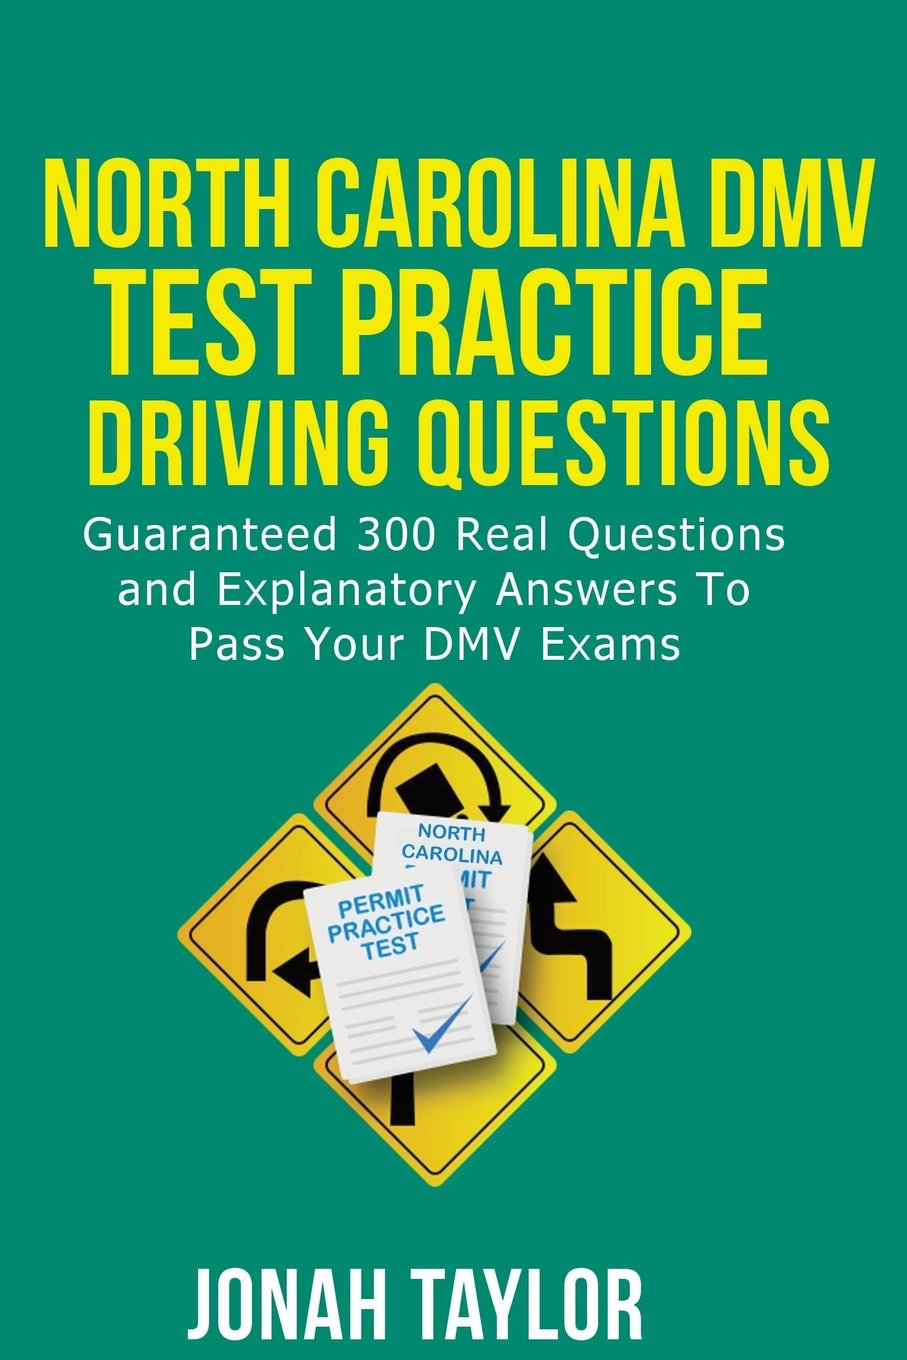 North carolina dmv practice test printable | FREE North